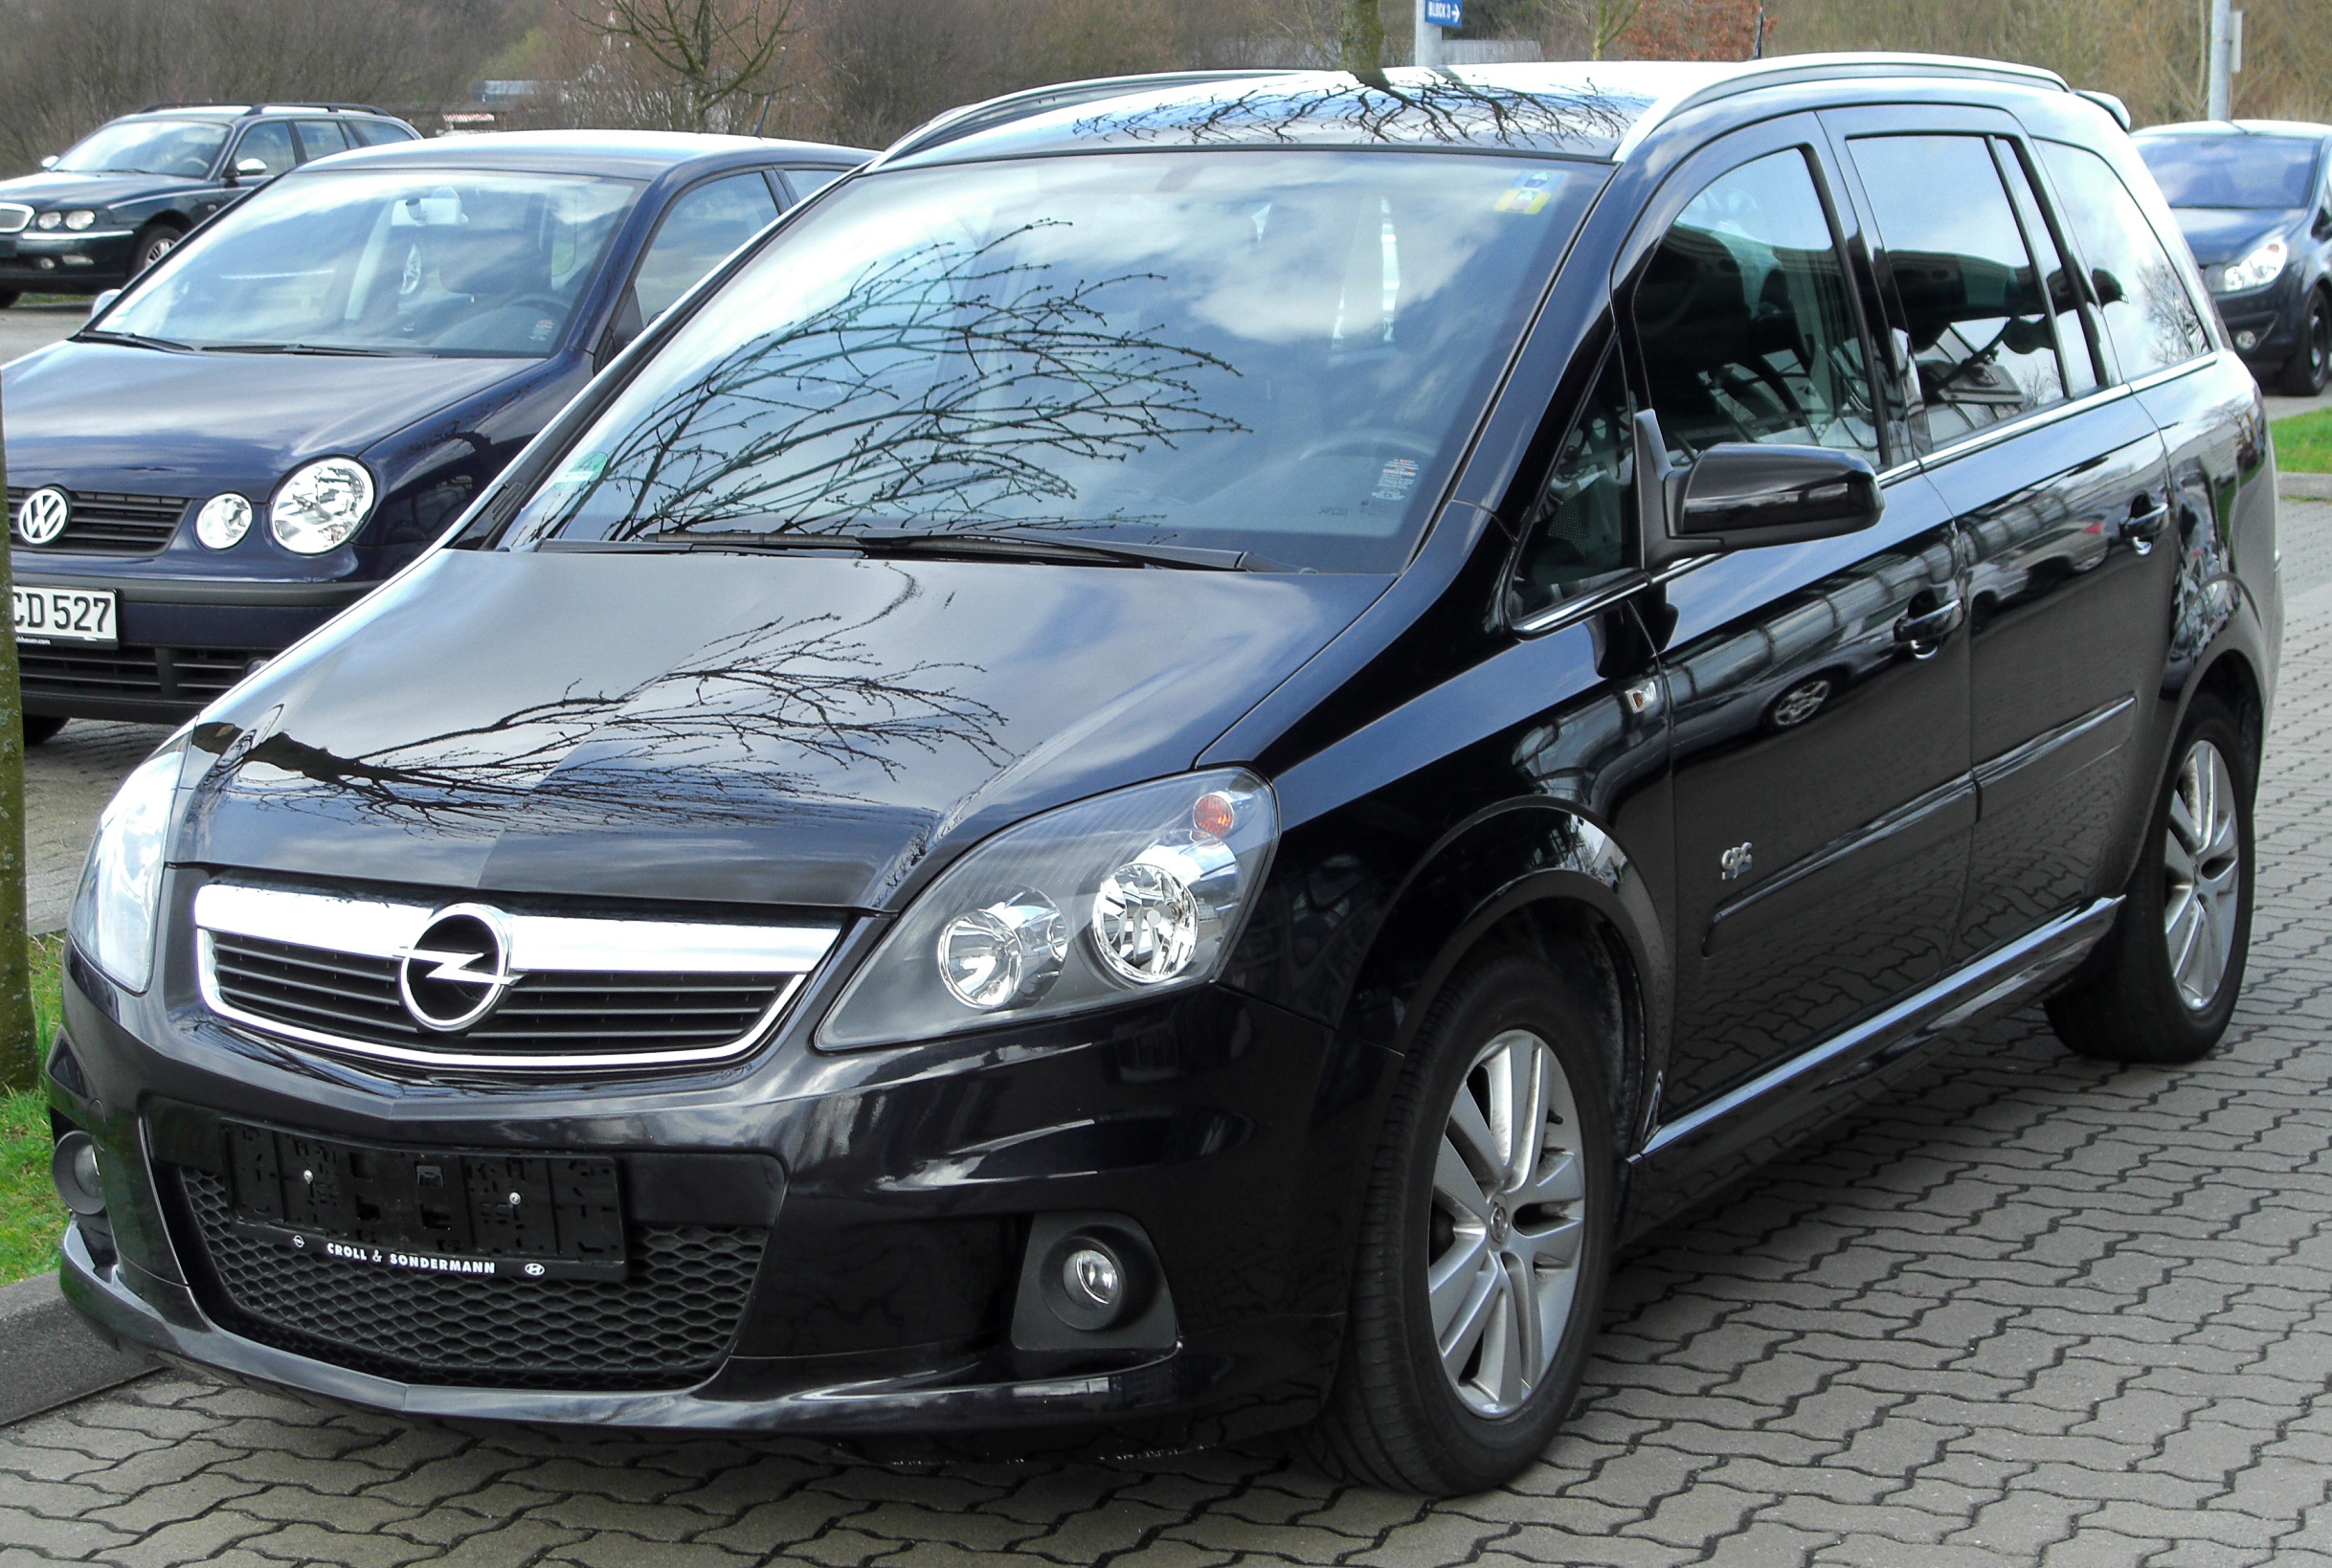 file opel zafira ii facelift opc line front wikimedia commons. Black Bedroom Furniture Sets. Home Design Ideas